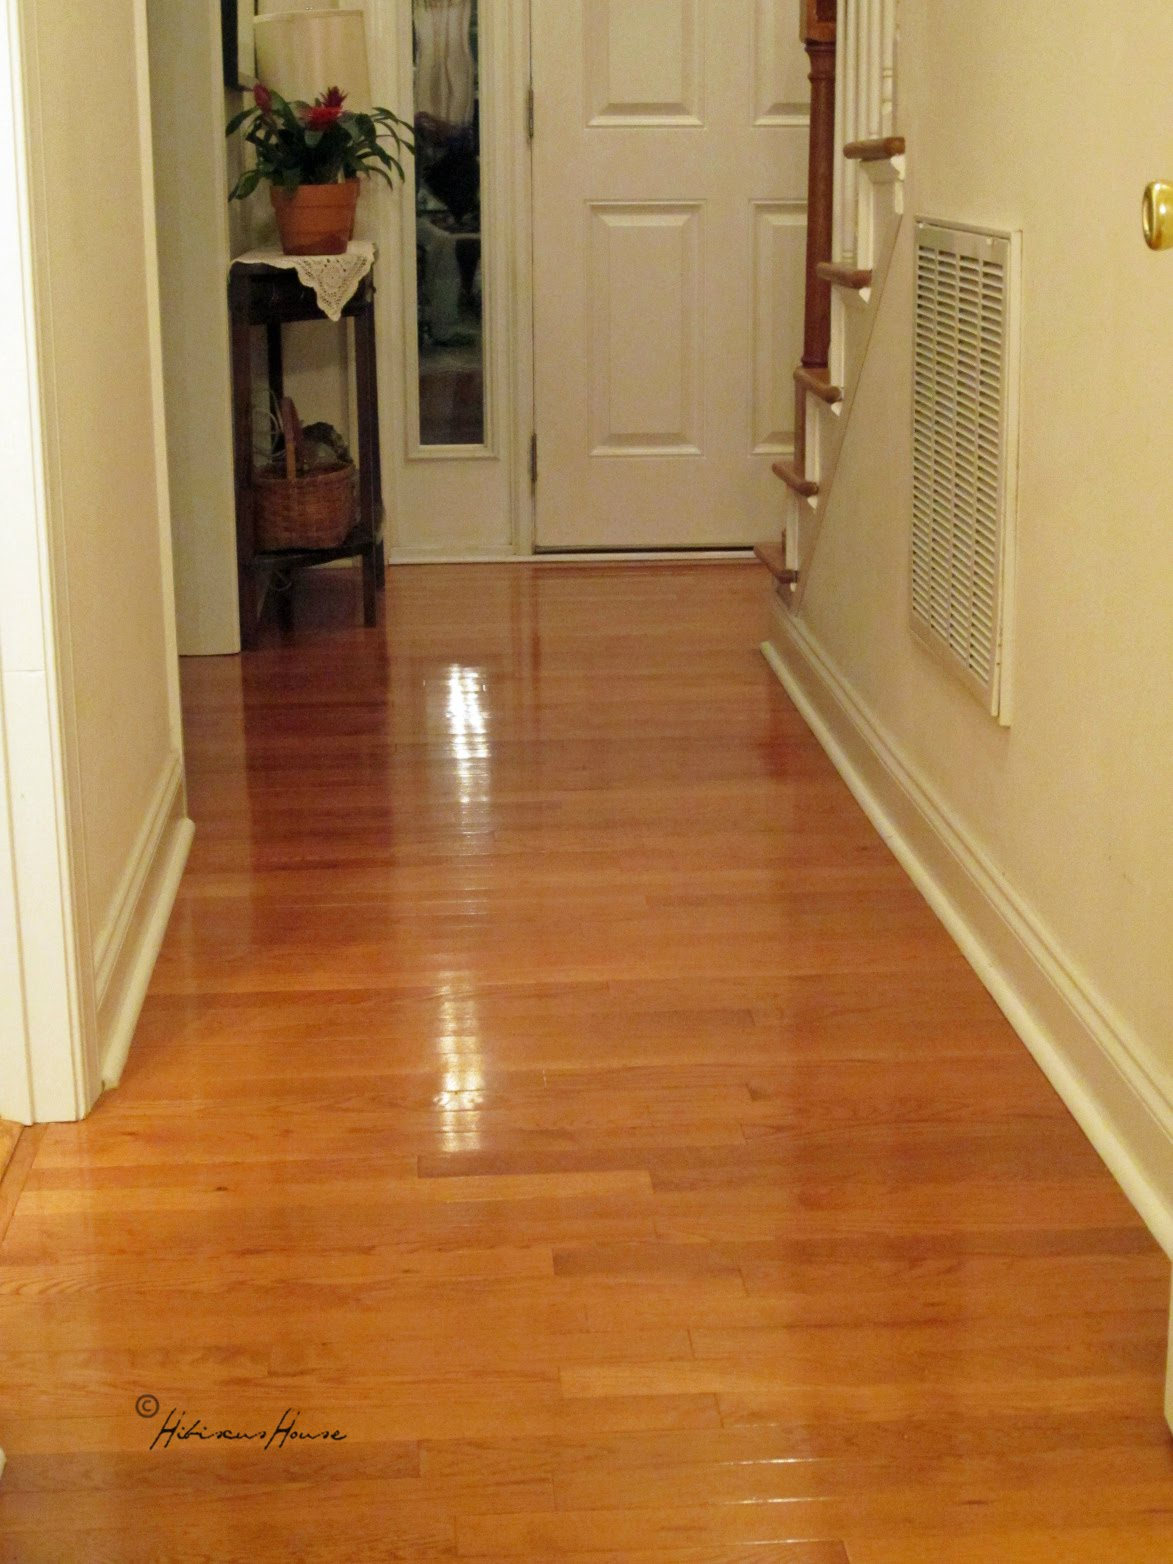 Do You Like Hardwood Flooring?